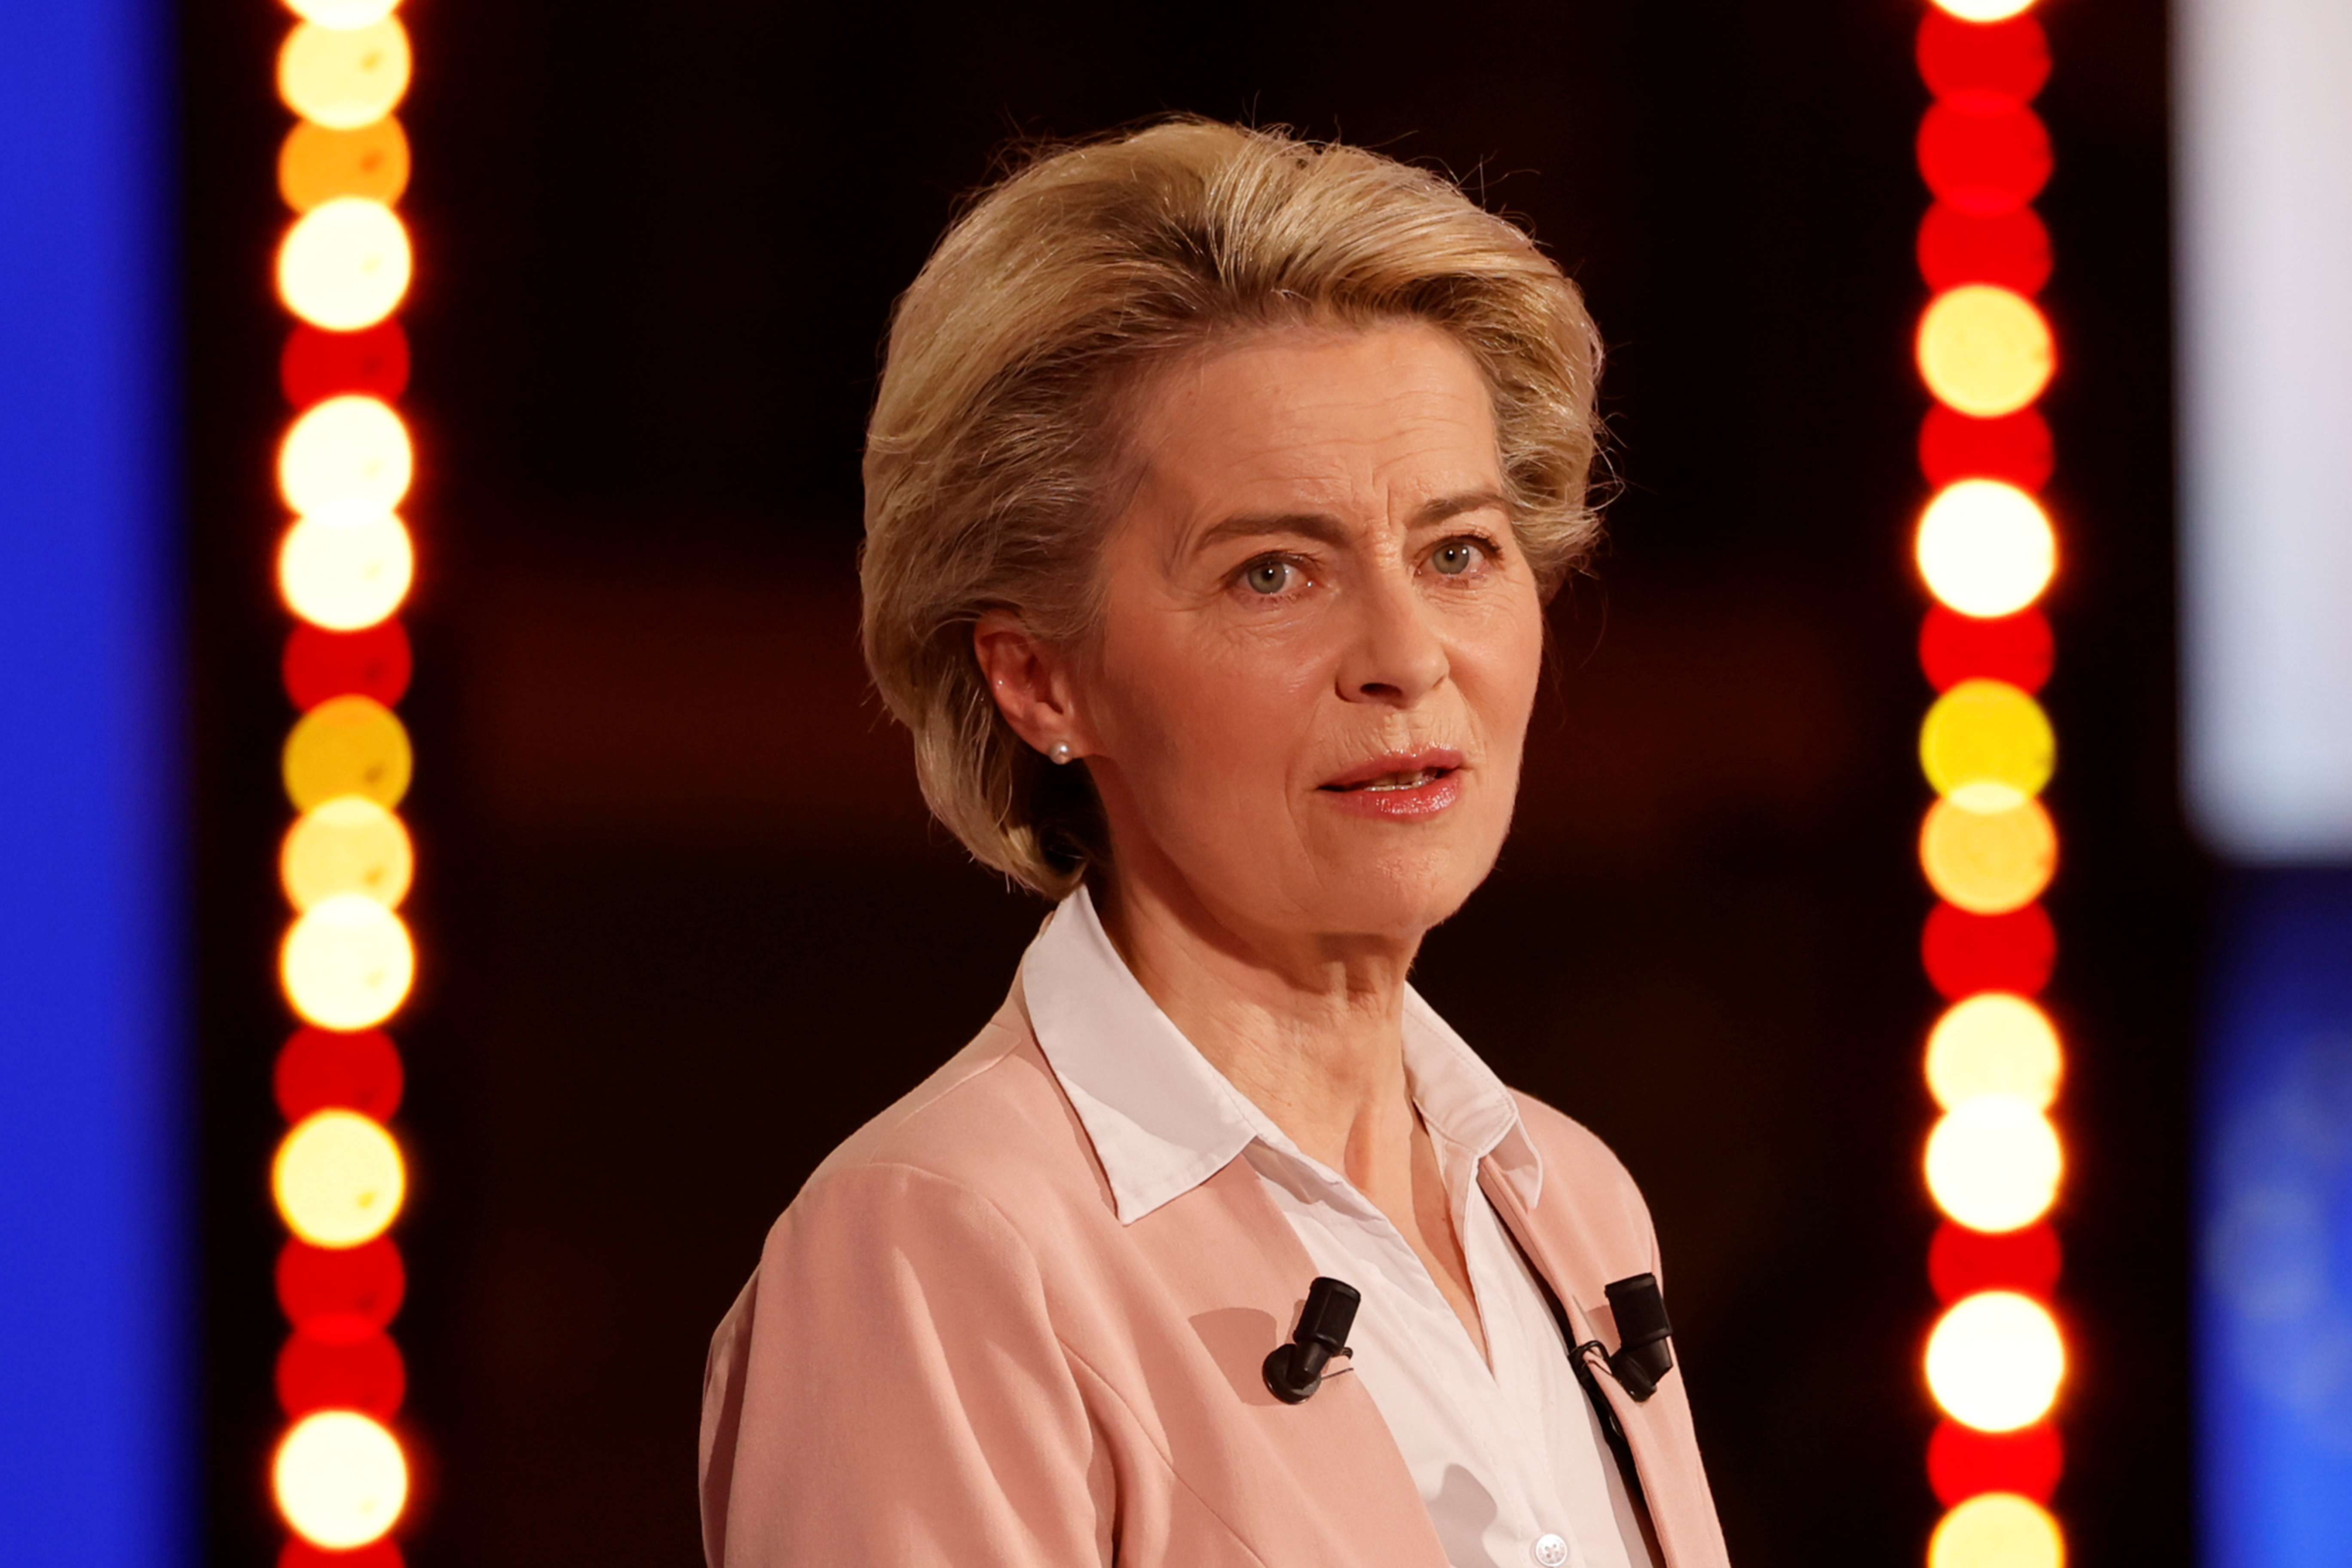 European Commission President Ursula von der Leyen delivers her speech during the Future of Europe conference at the European Parliament in Strasbourg, France, May 9, 2021. Jean-Francois Badias/Pool via REUTERS